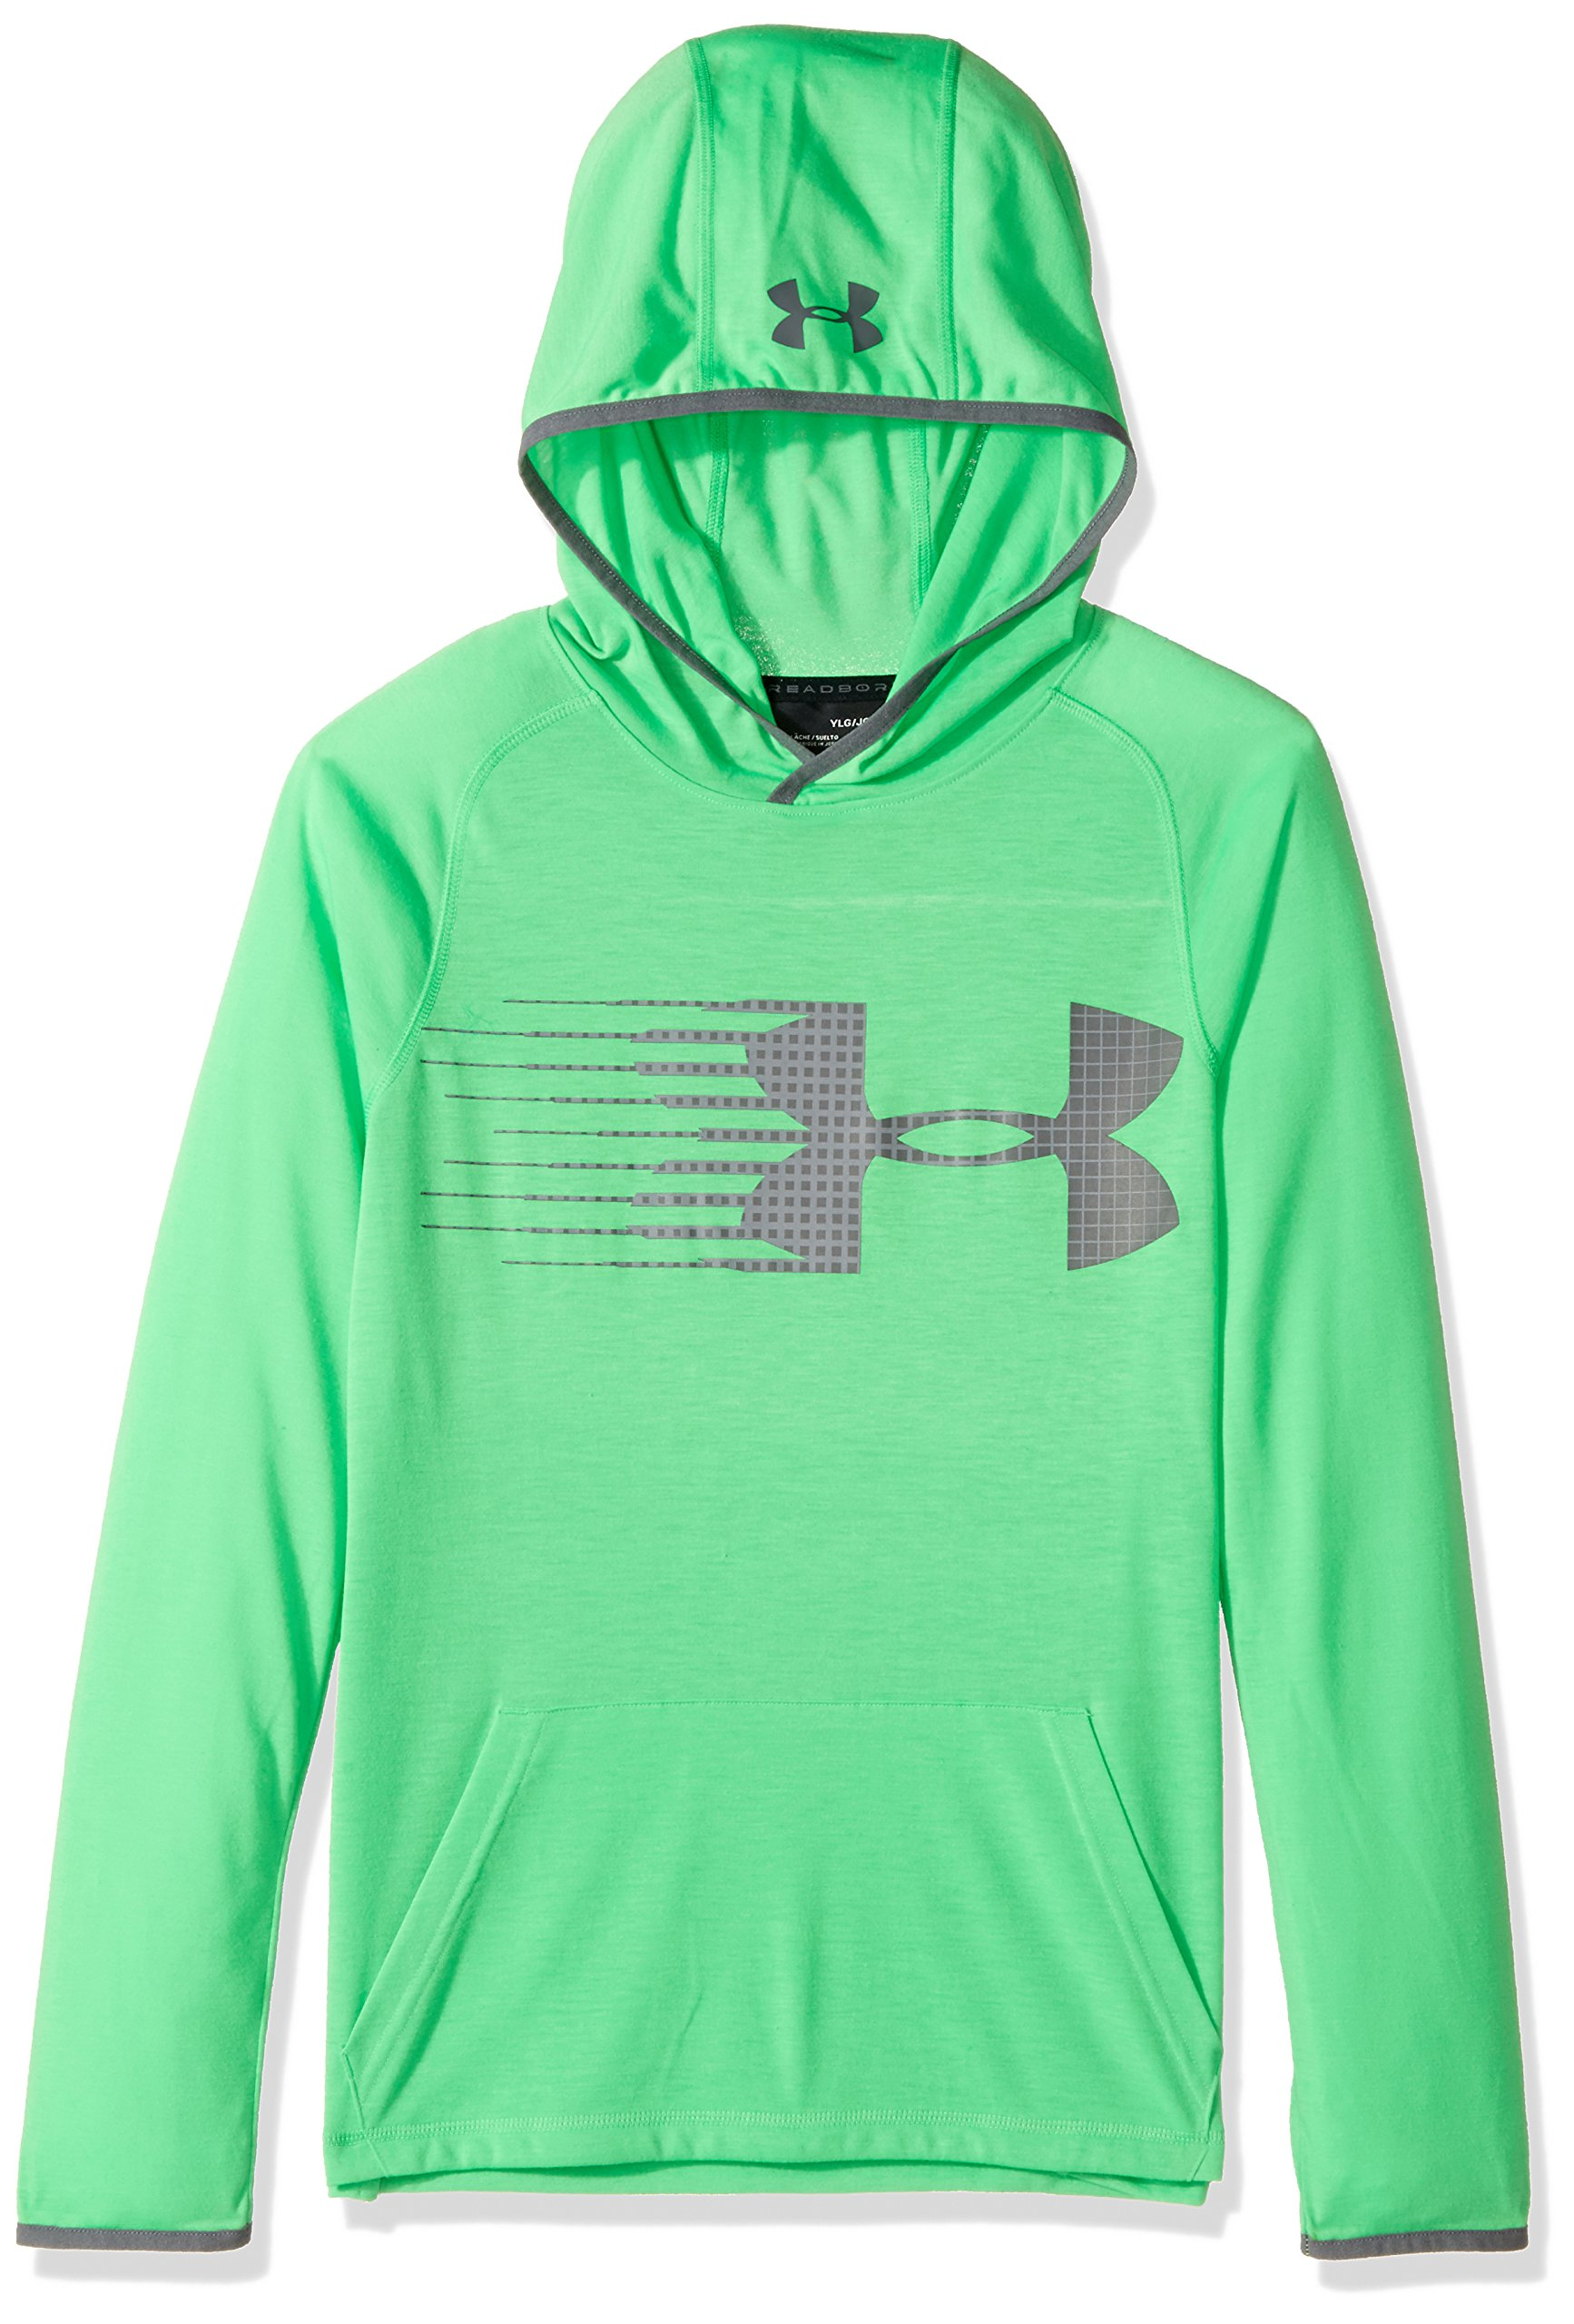 Under Armour Boys' Threadborne Hoodie,Lime Twist /Graphite, Youth Small